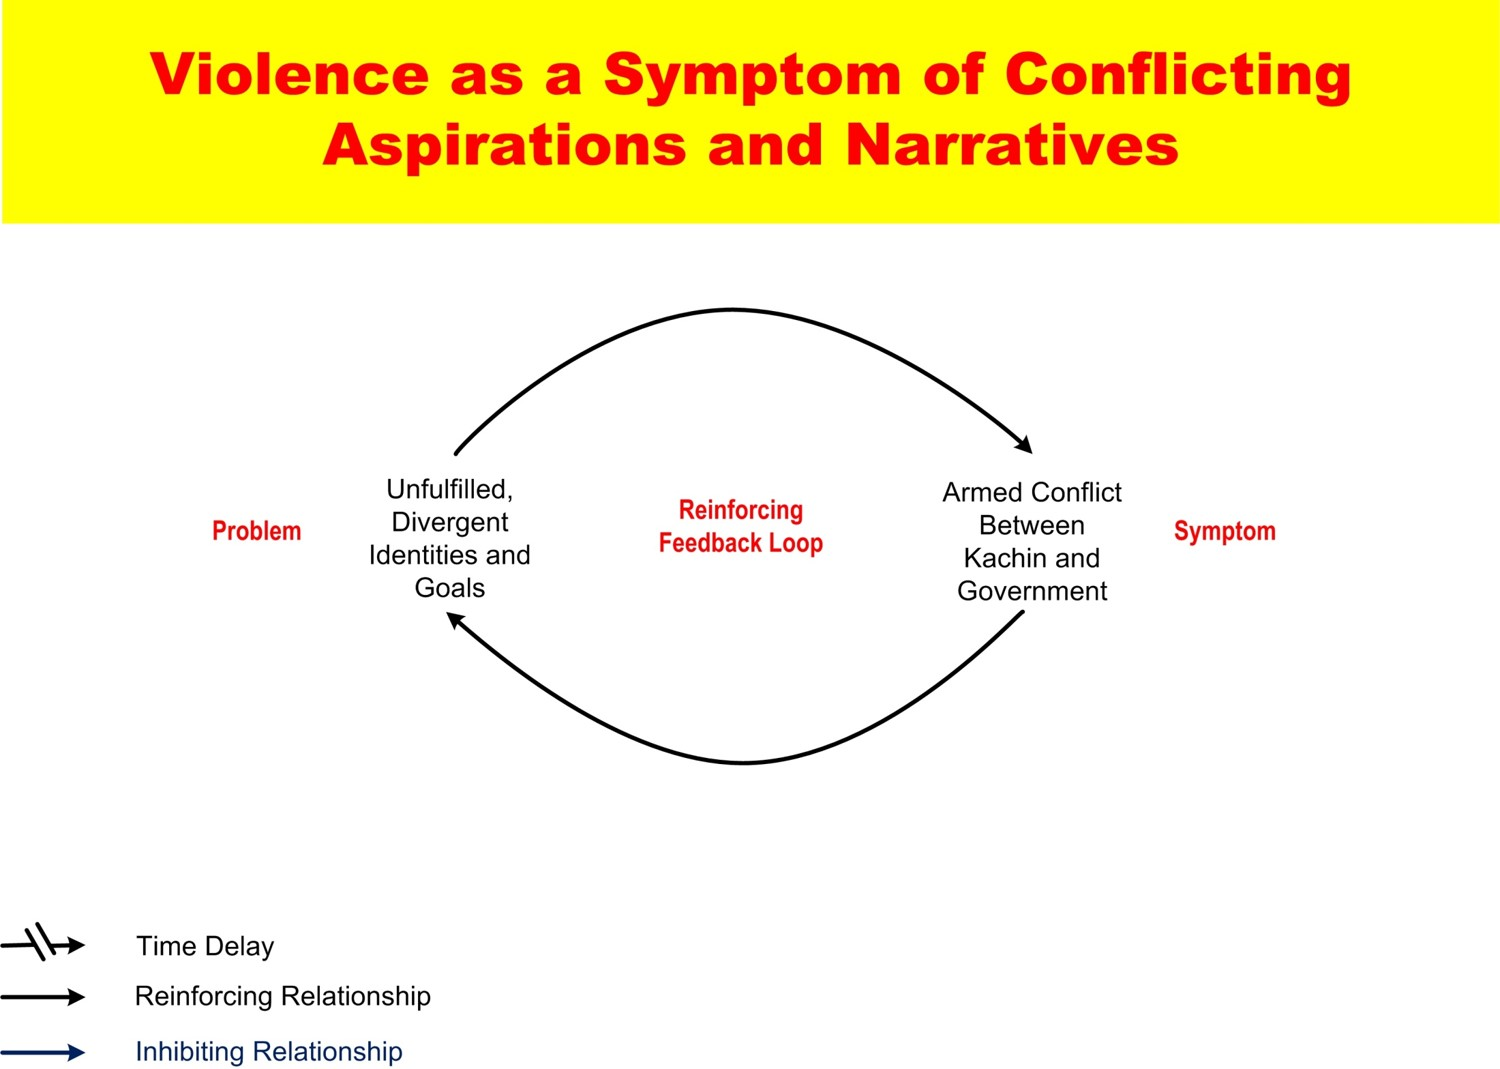 System conflict analysis in Kachin State Imagen8.jpg